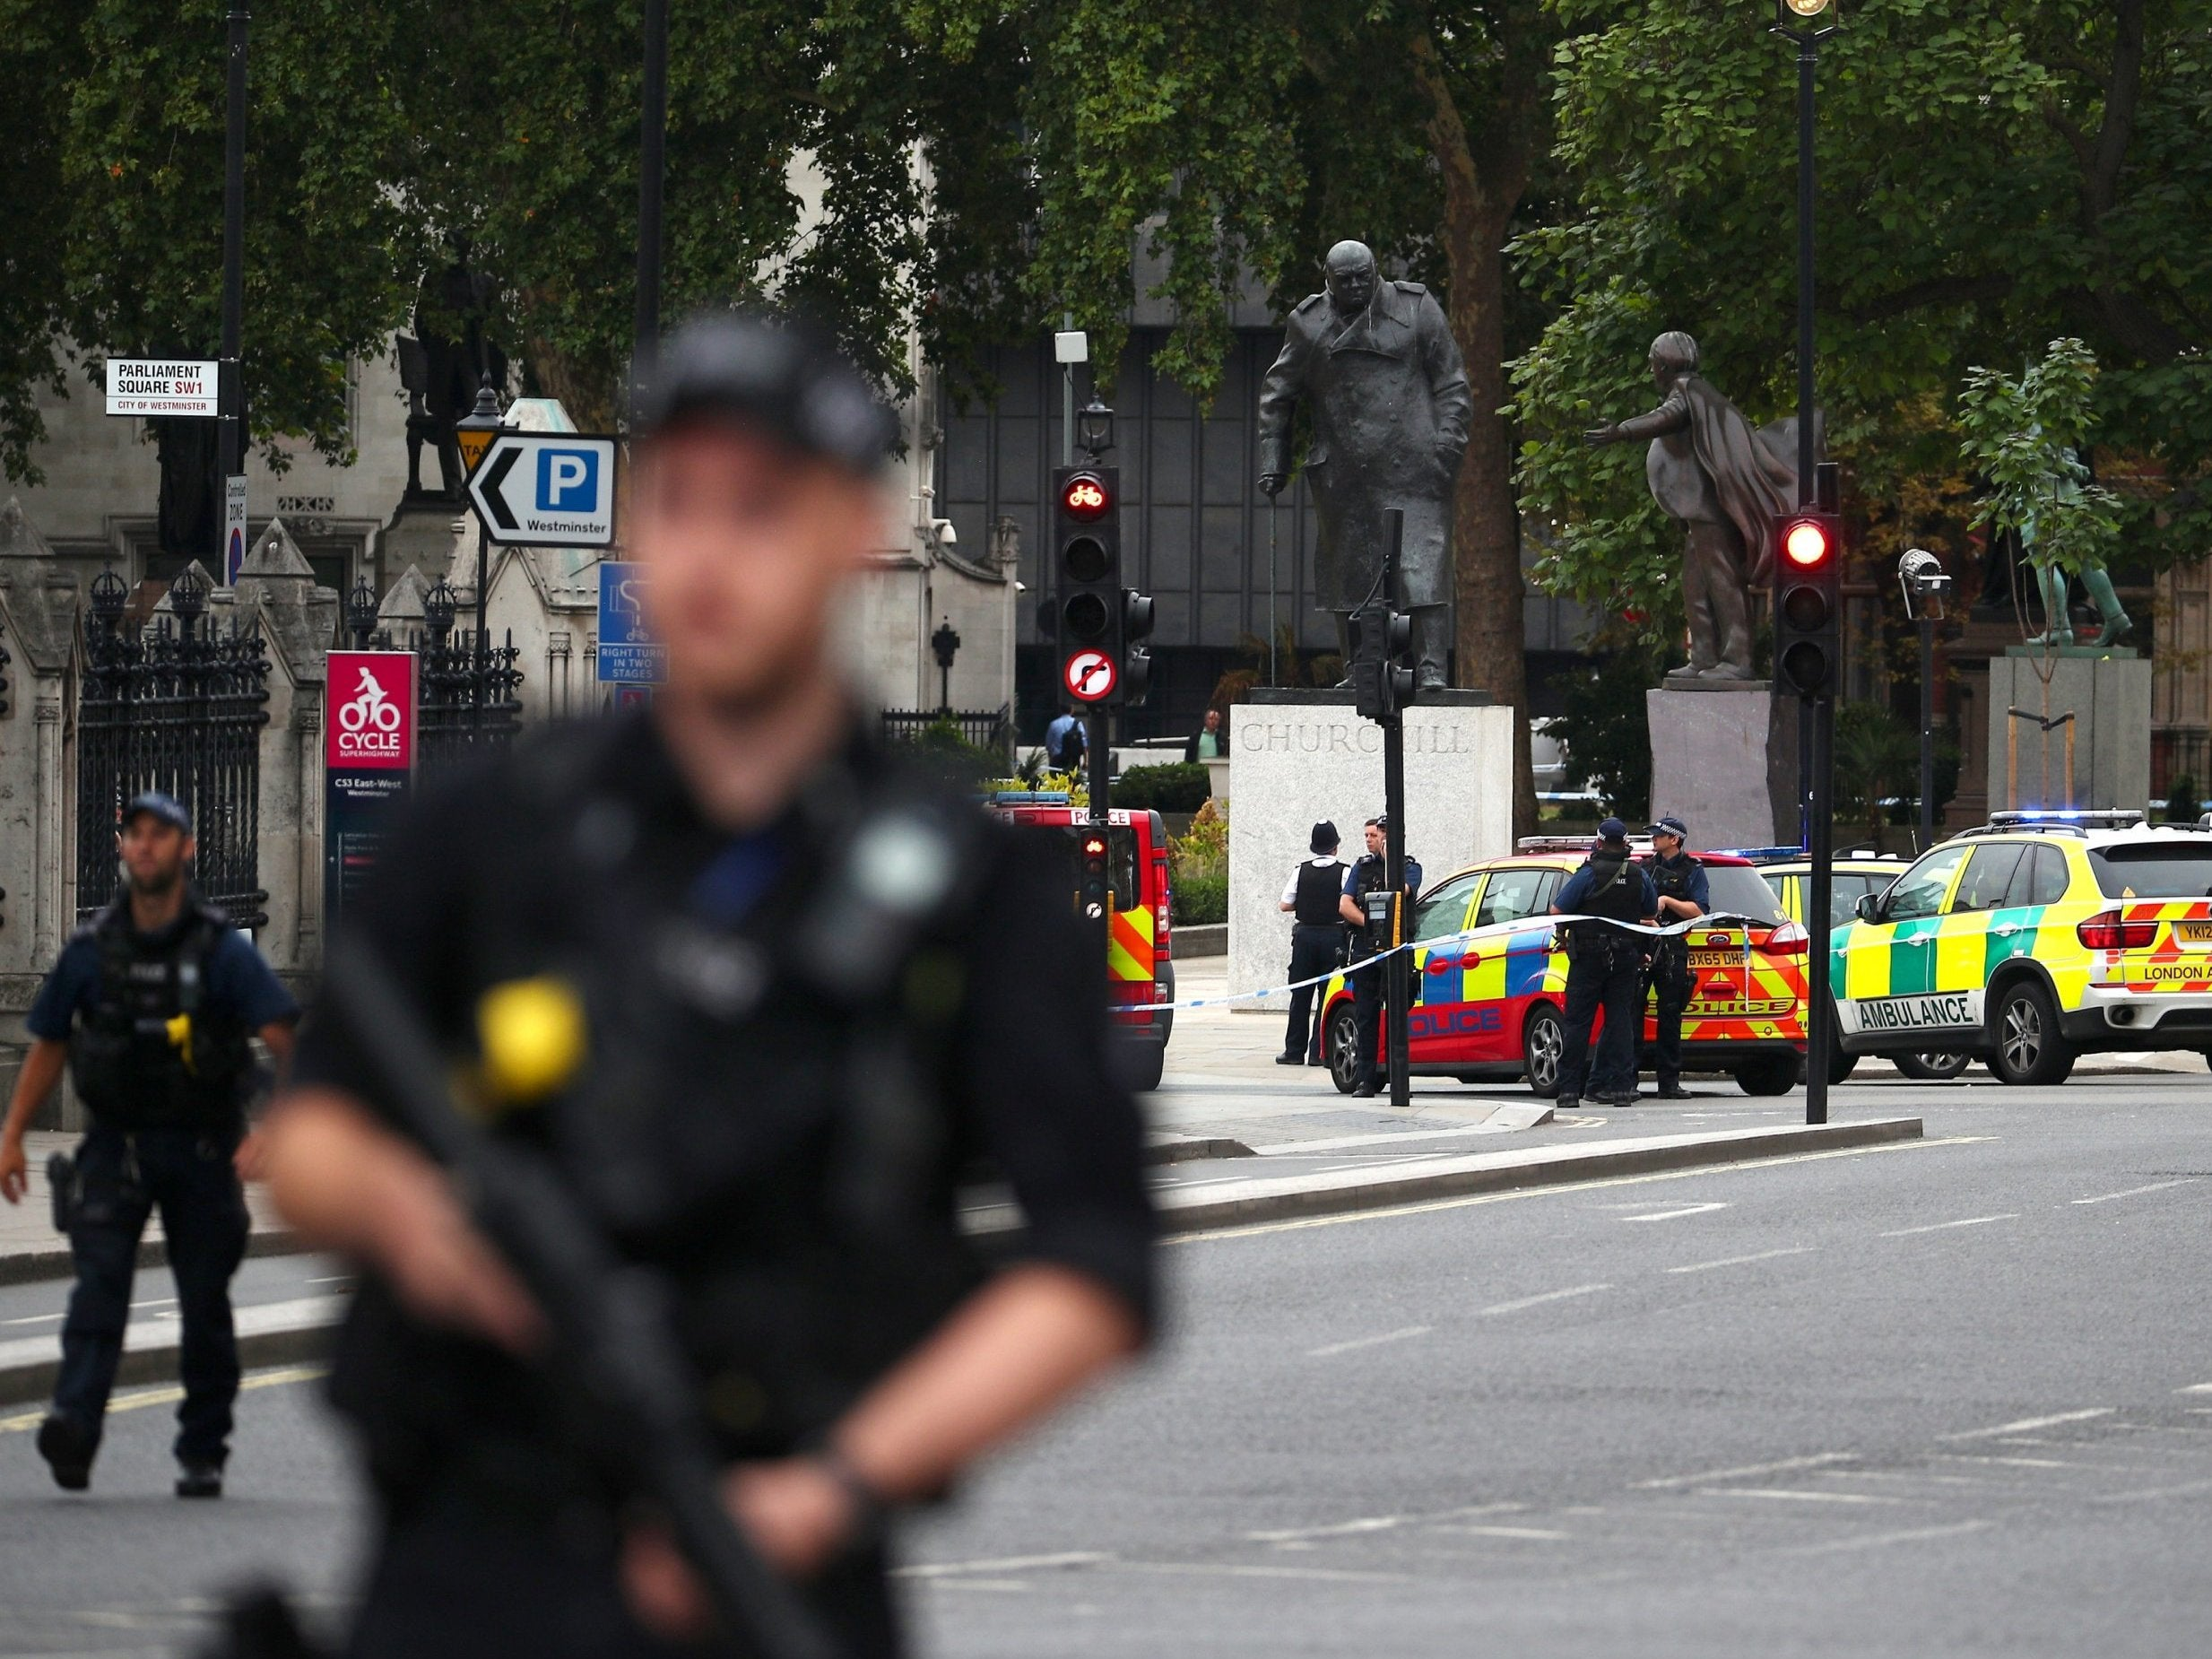 parliament car crash - as it happened: police search three